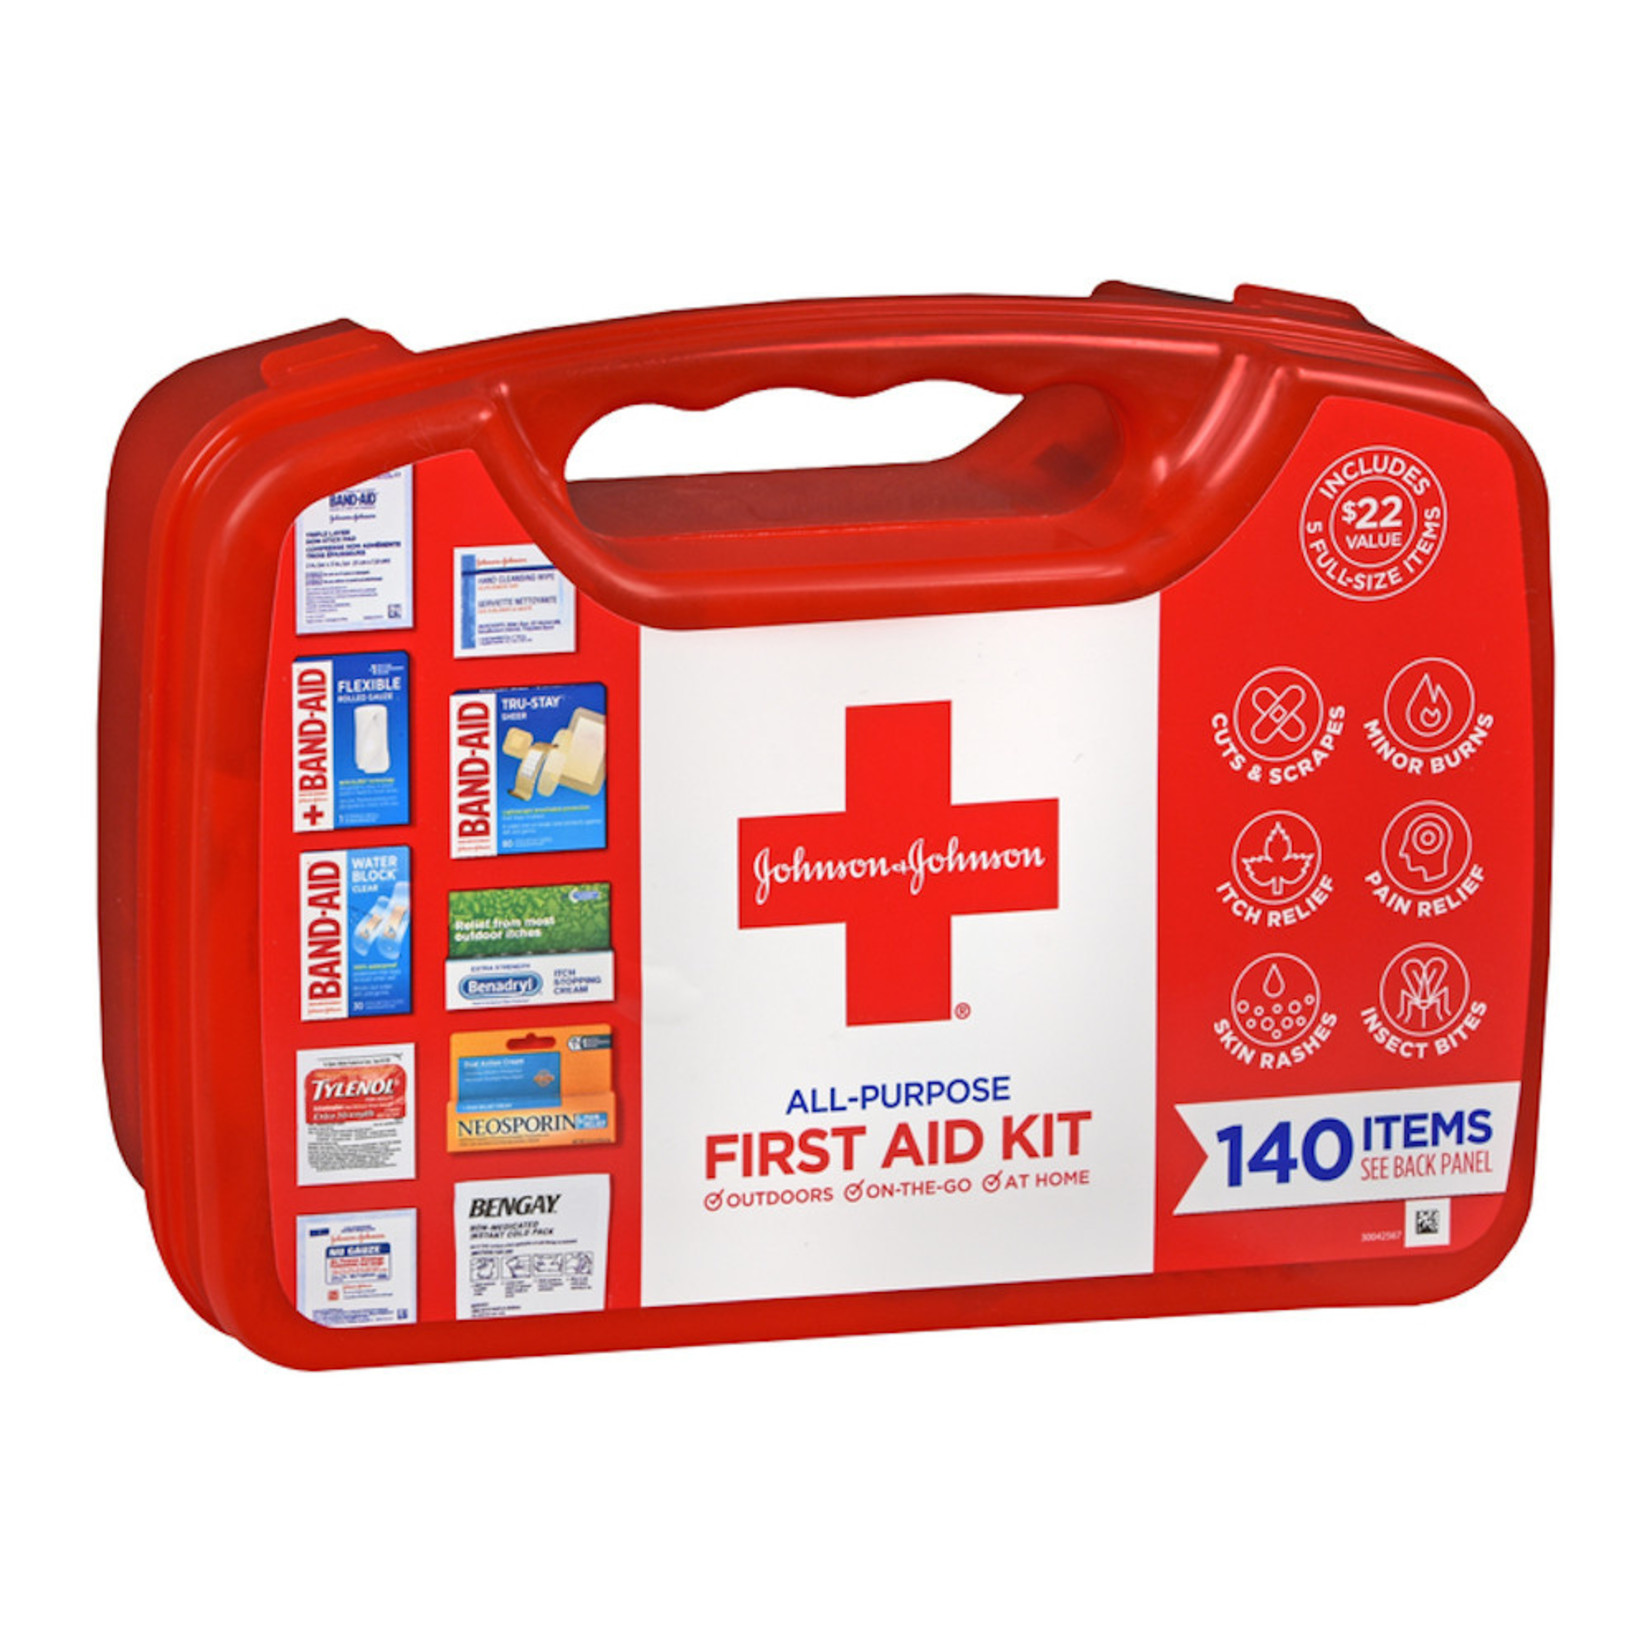 Flamingo Care Products FIRST AID ALL PURPOSE KIT